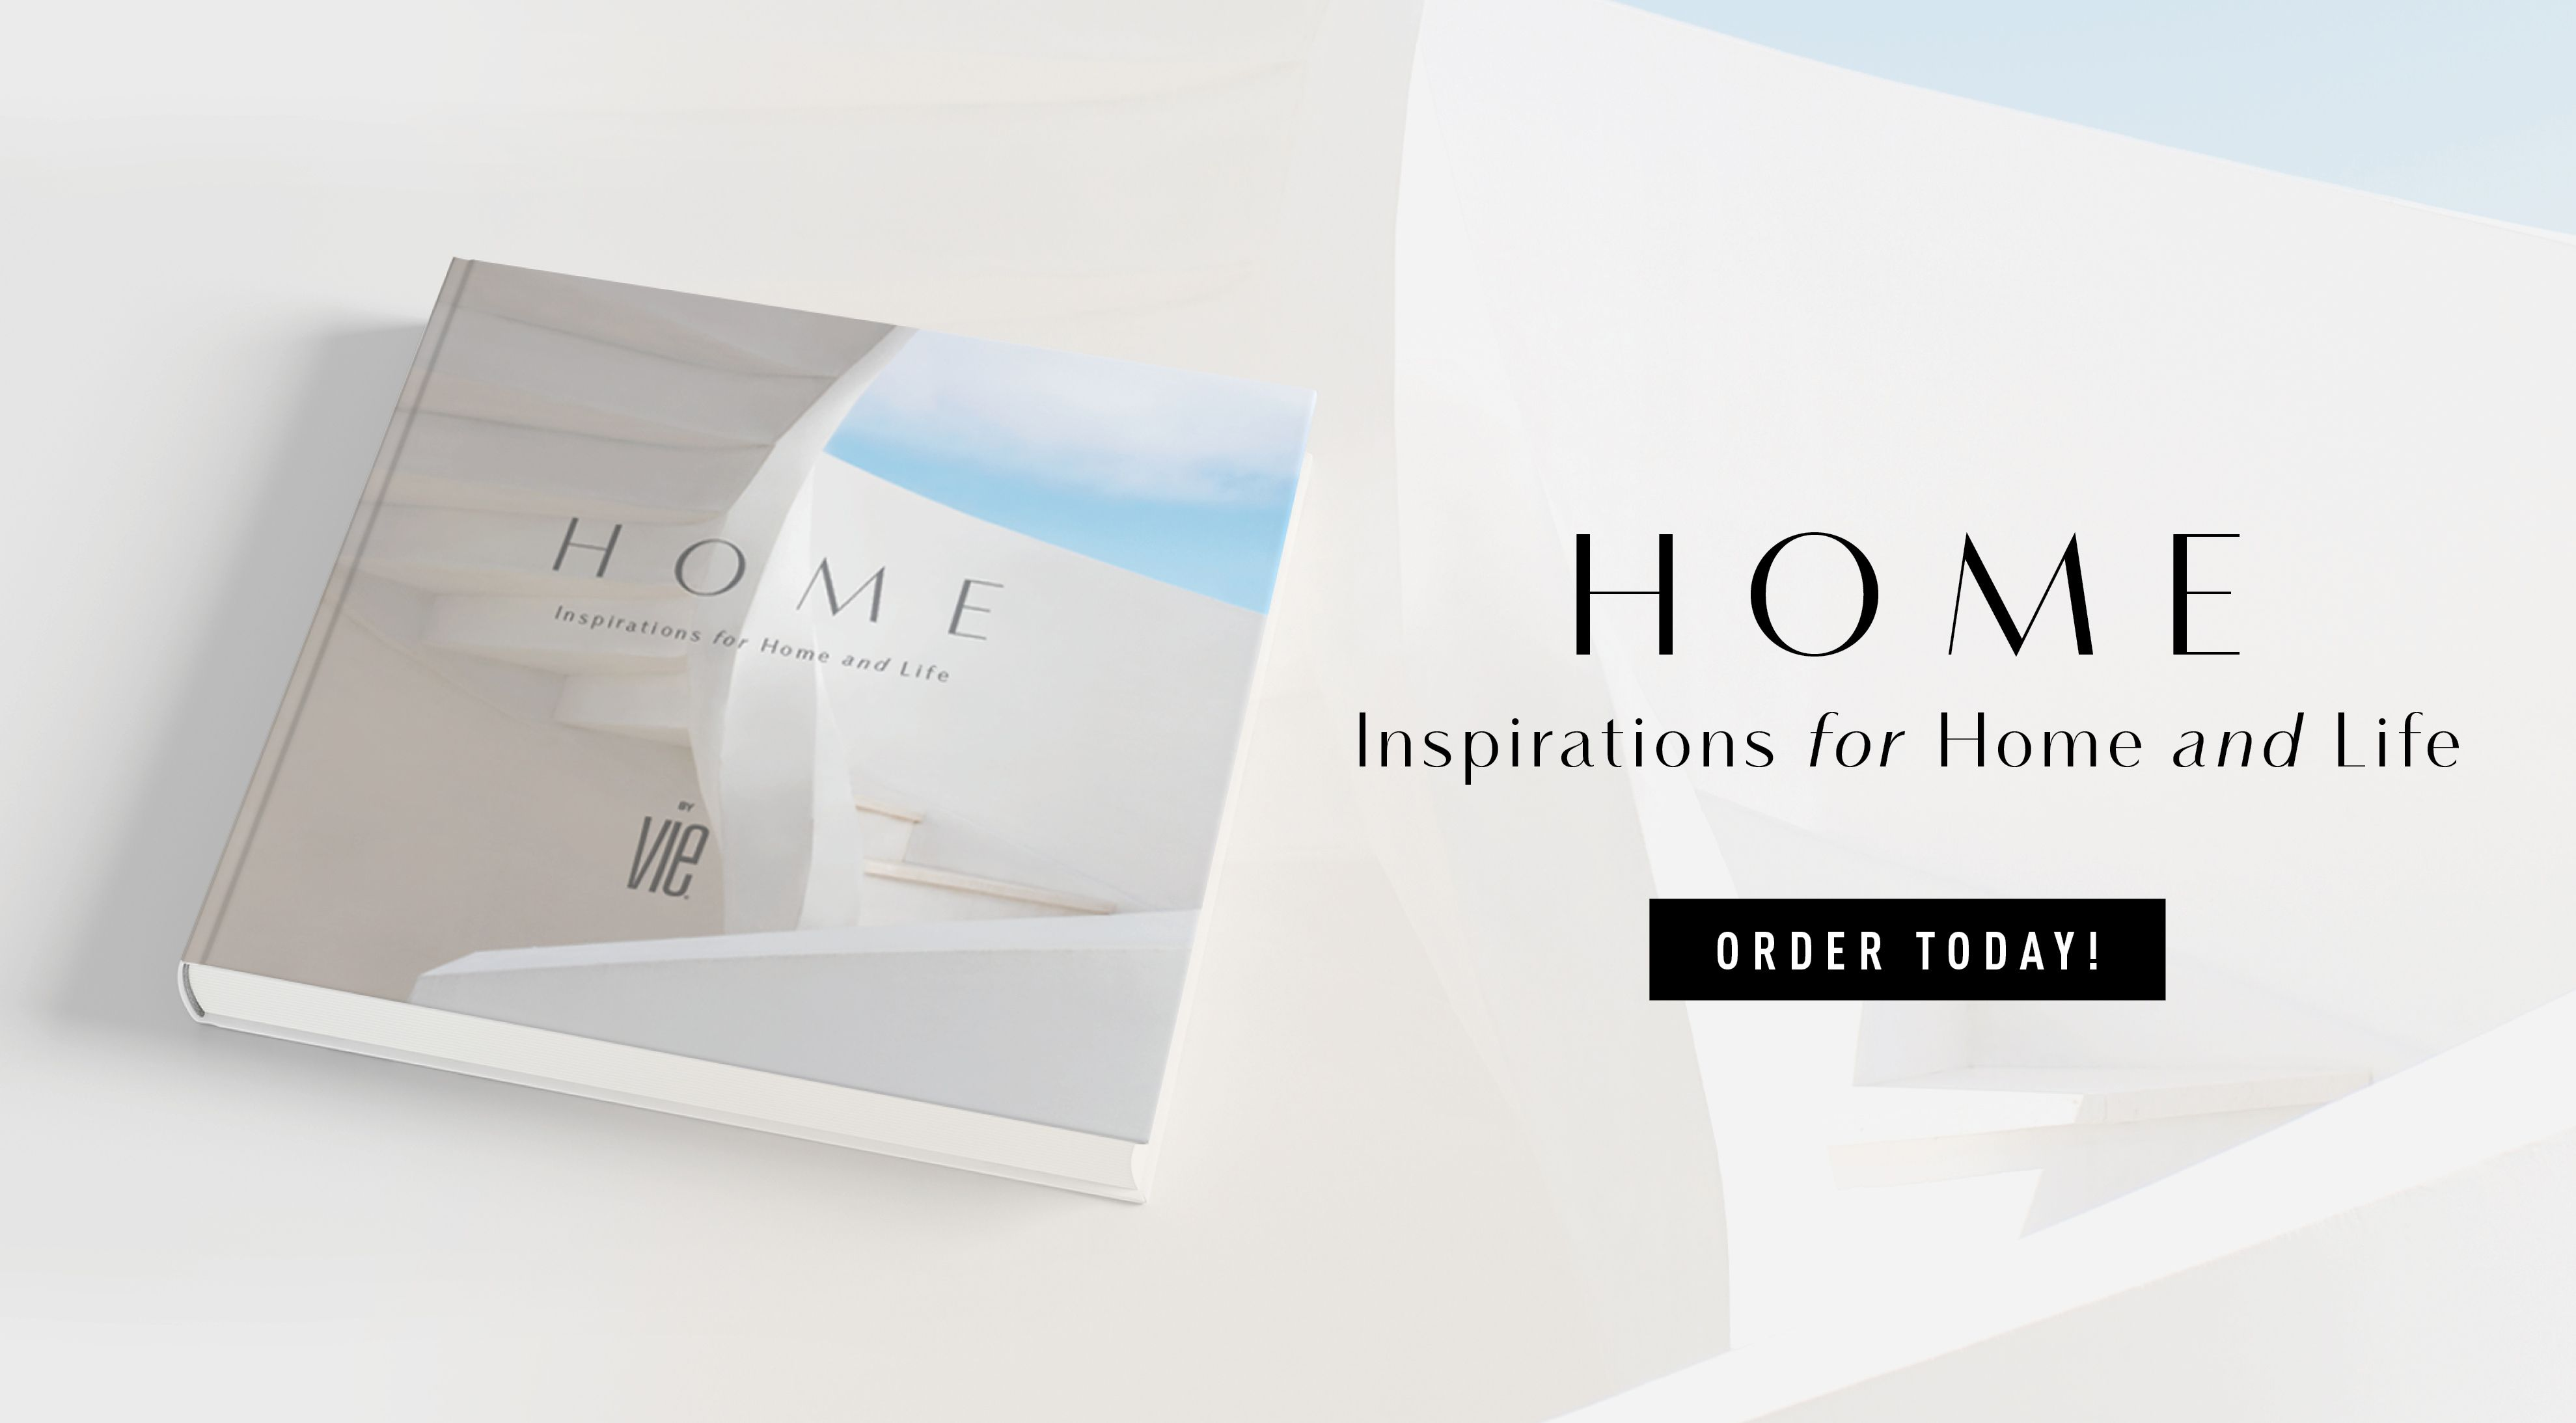 VIE Magazine, HOME—Inspirations for Home and Life by VIE